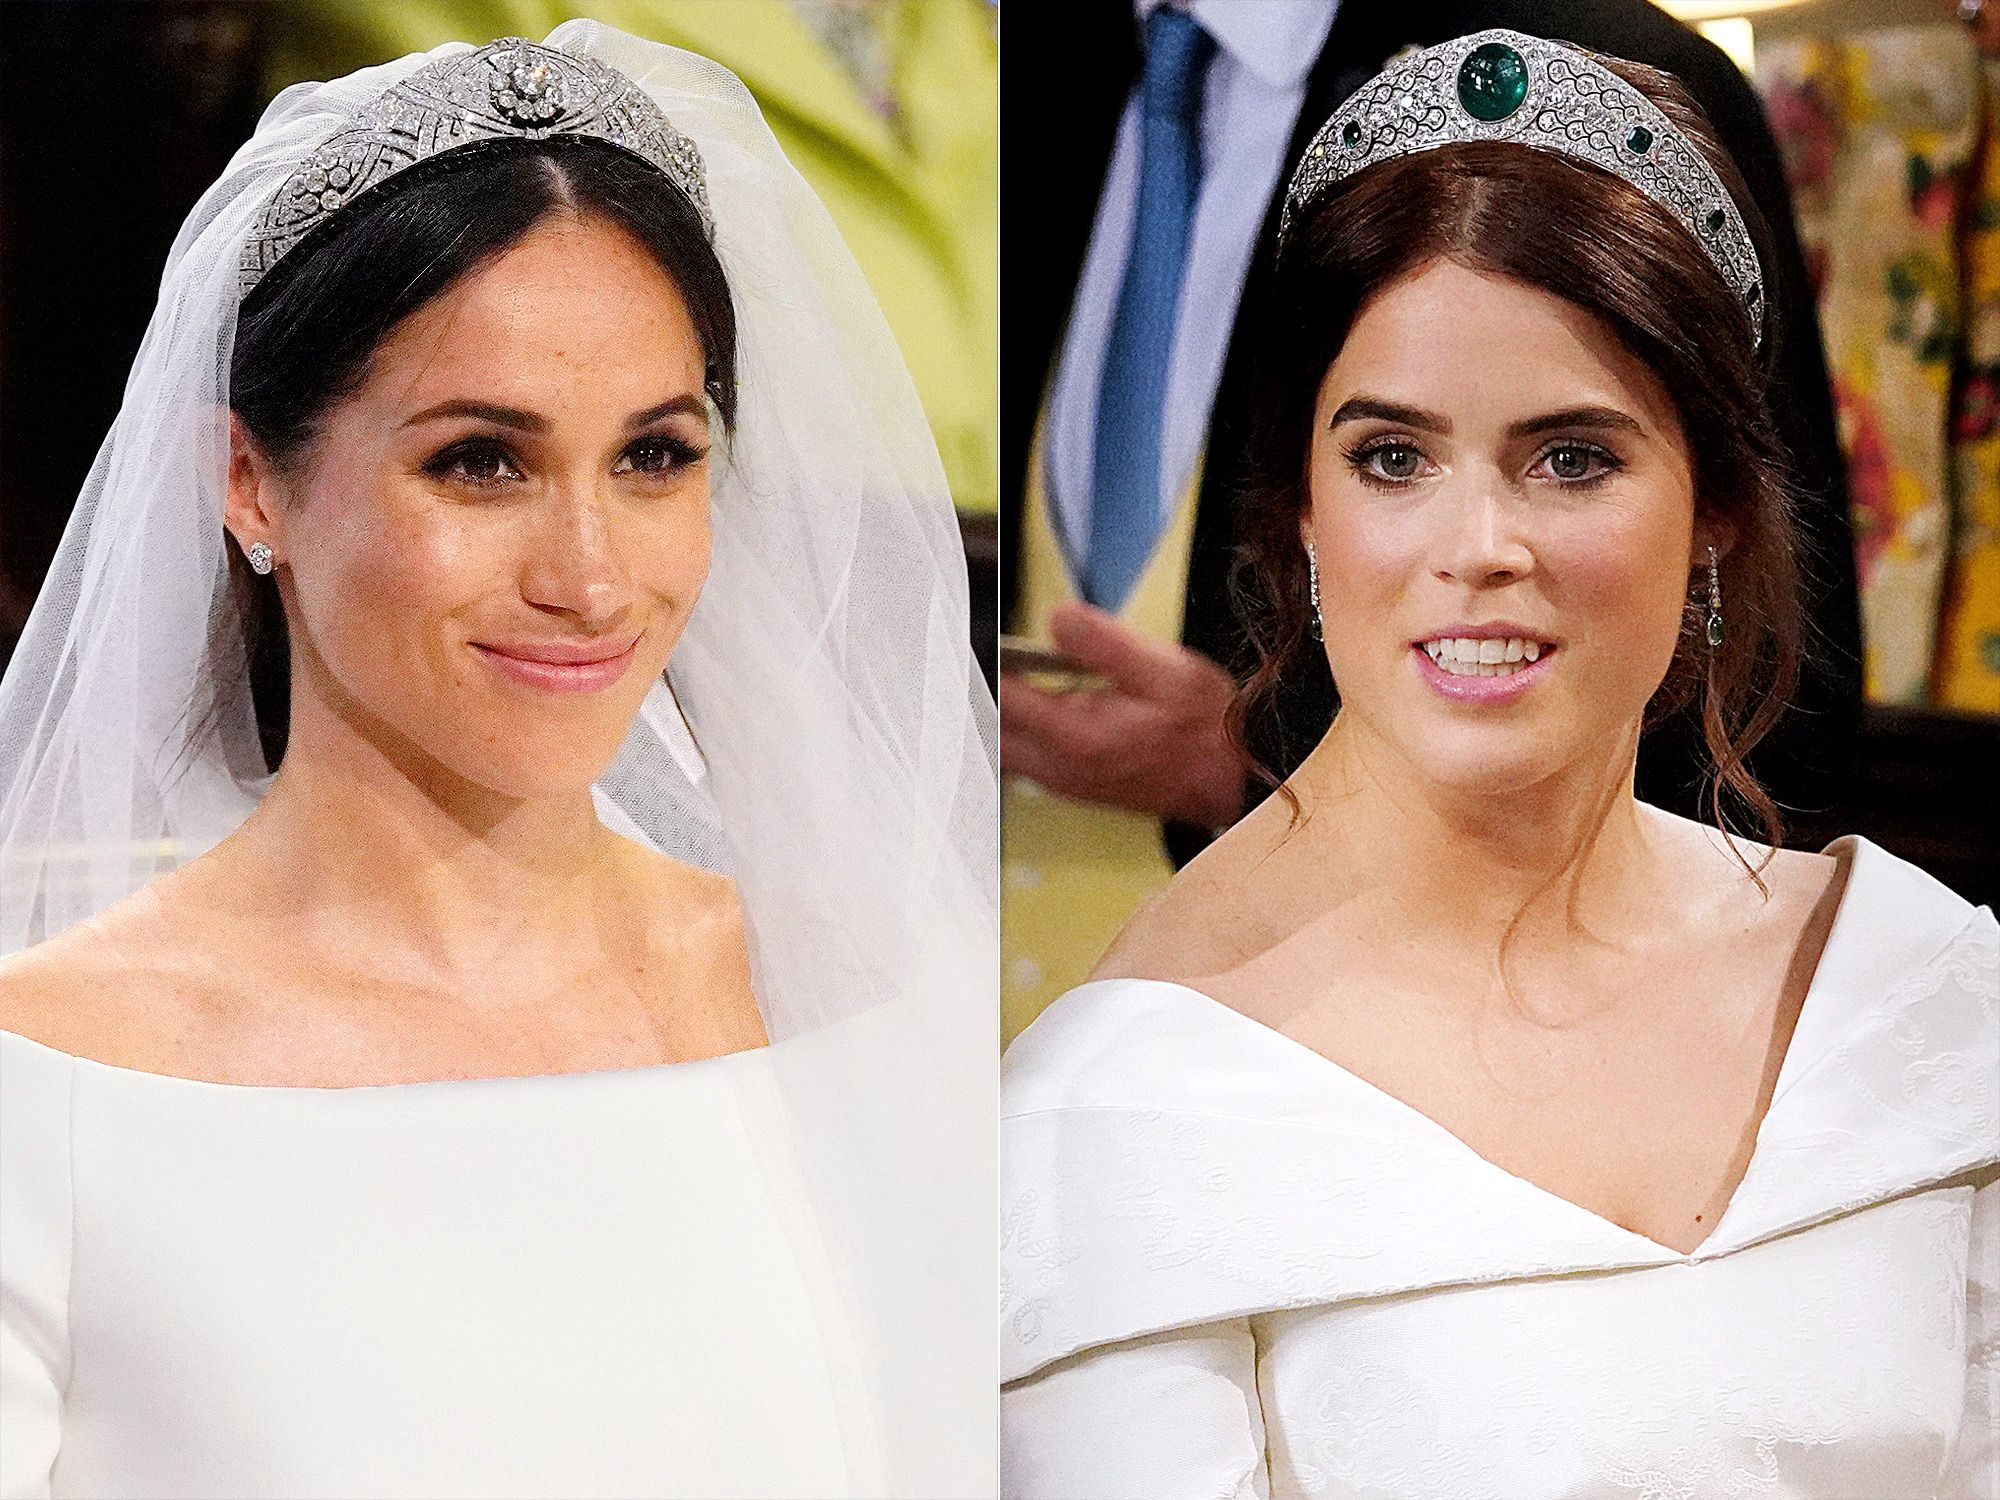 Princess Eugenie And Meghan Markle S Wedding Tiaras Have One Major Thing In Common Royal Wedding Dress Royal Brides Princess Eugenie